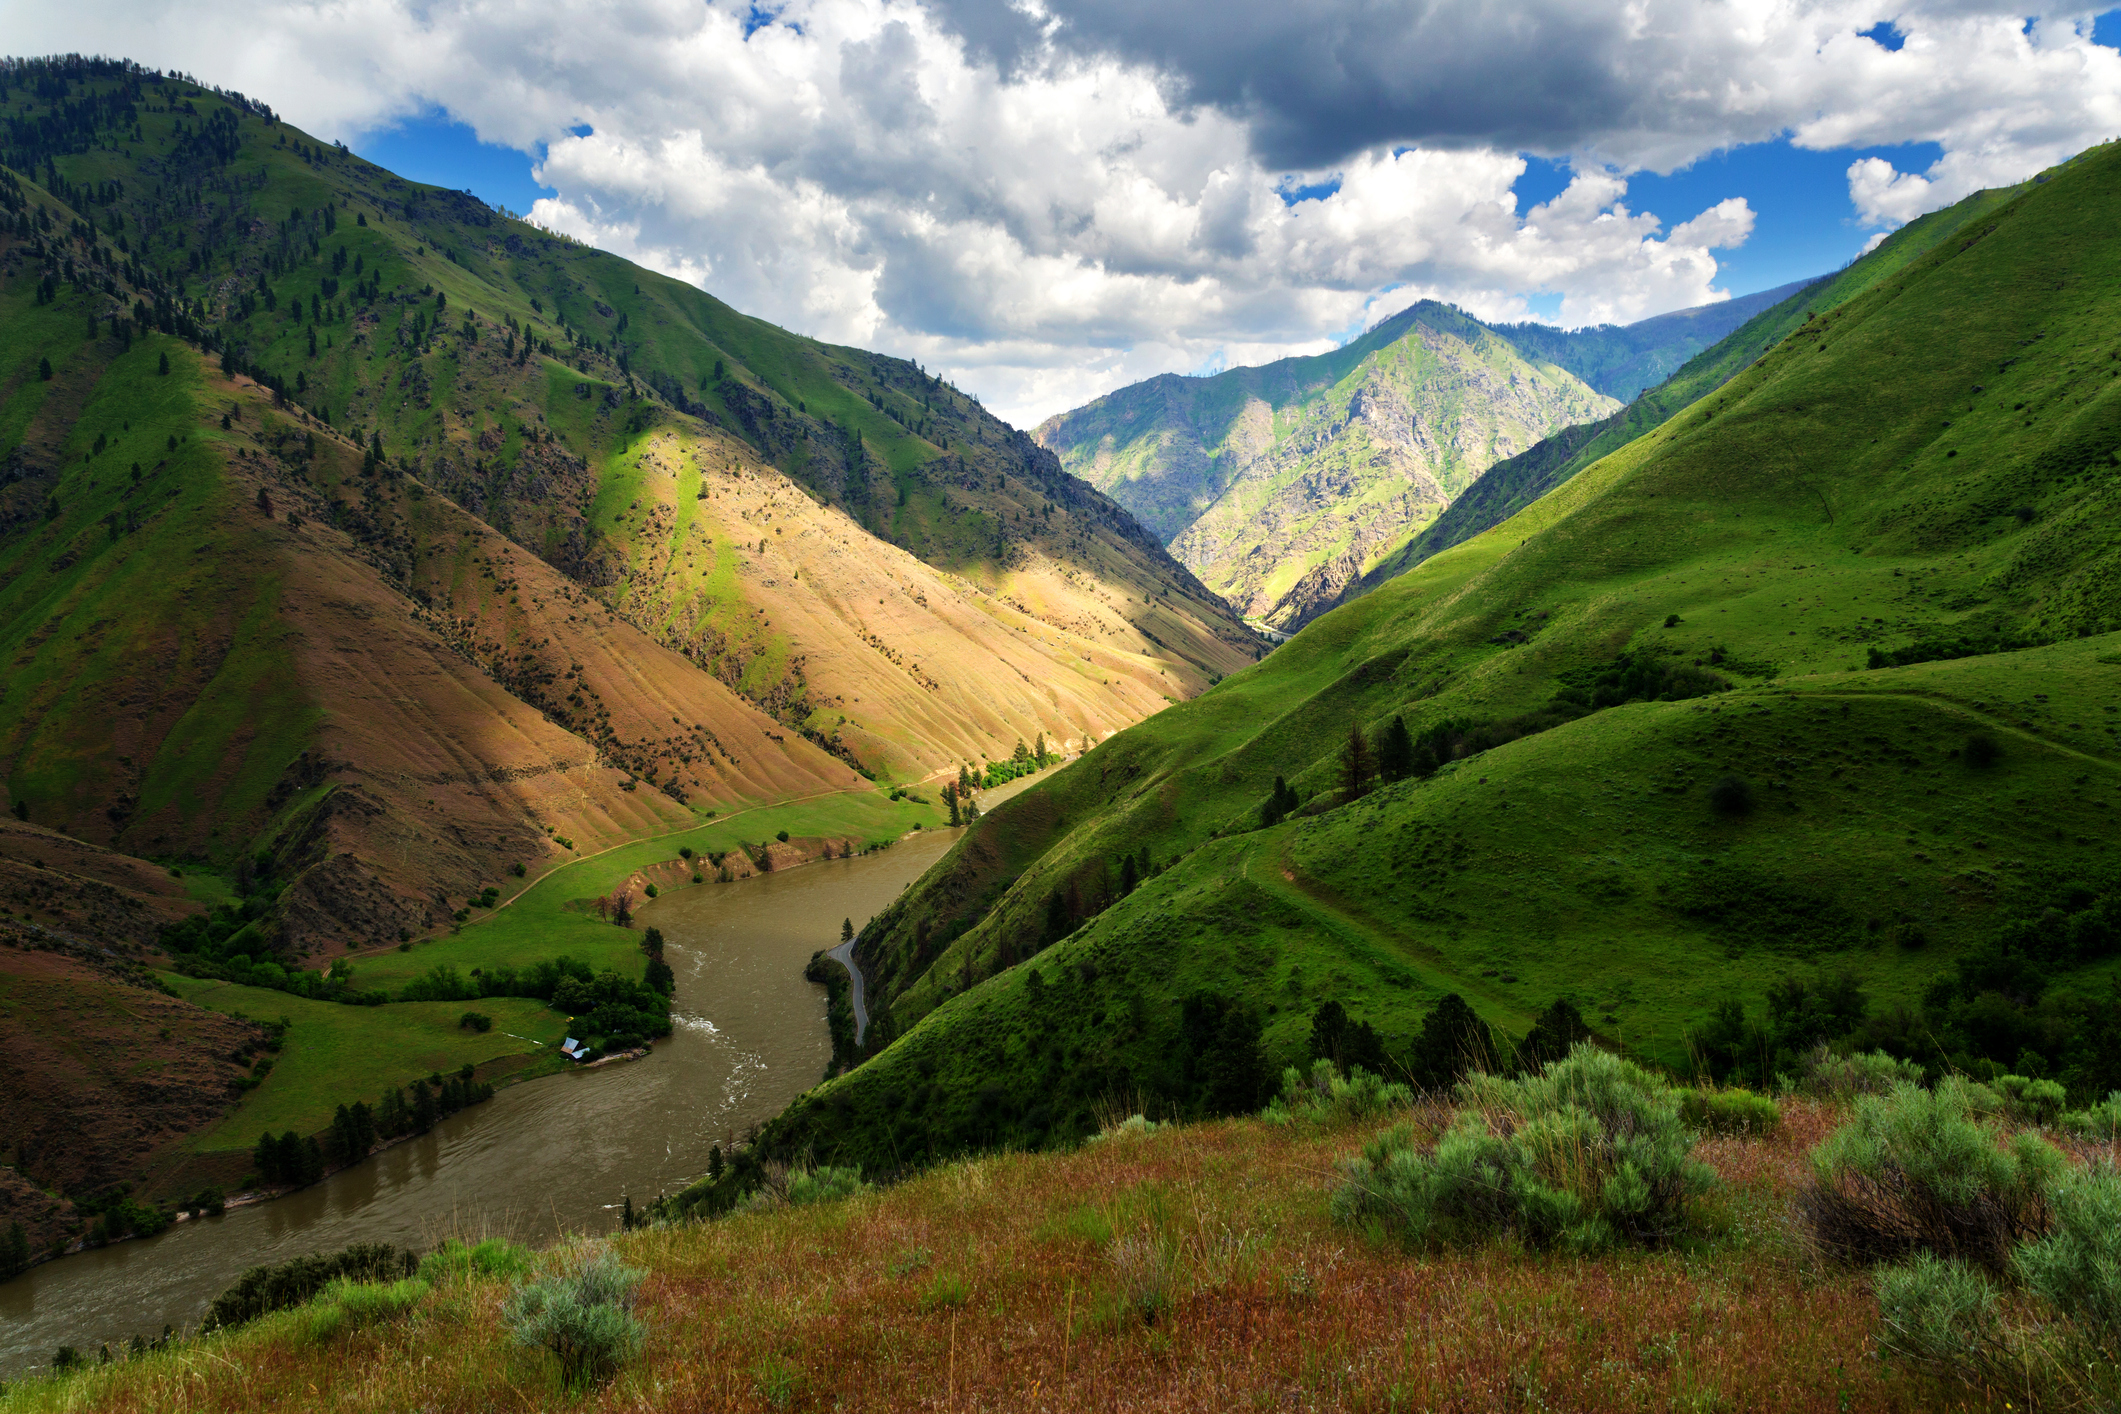 These 12 Photos Show There's No Place As Scenic As Frank Church–River of No Return Wilderness In Idaho